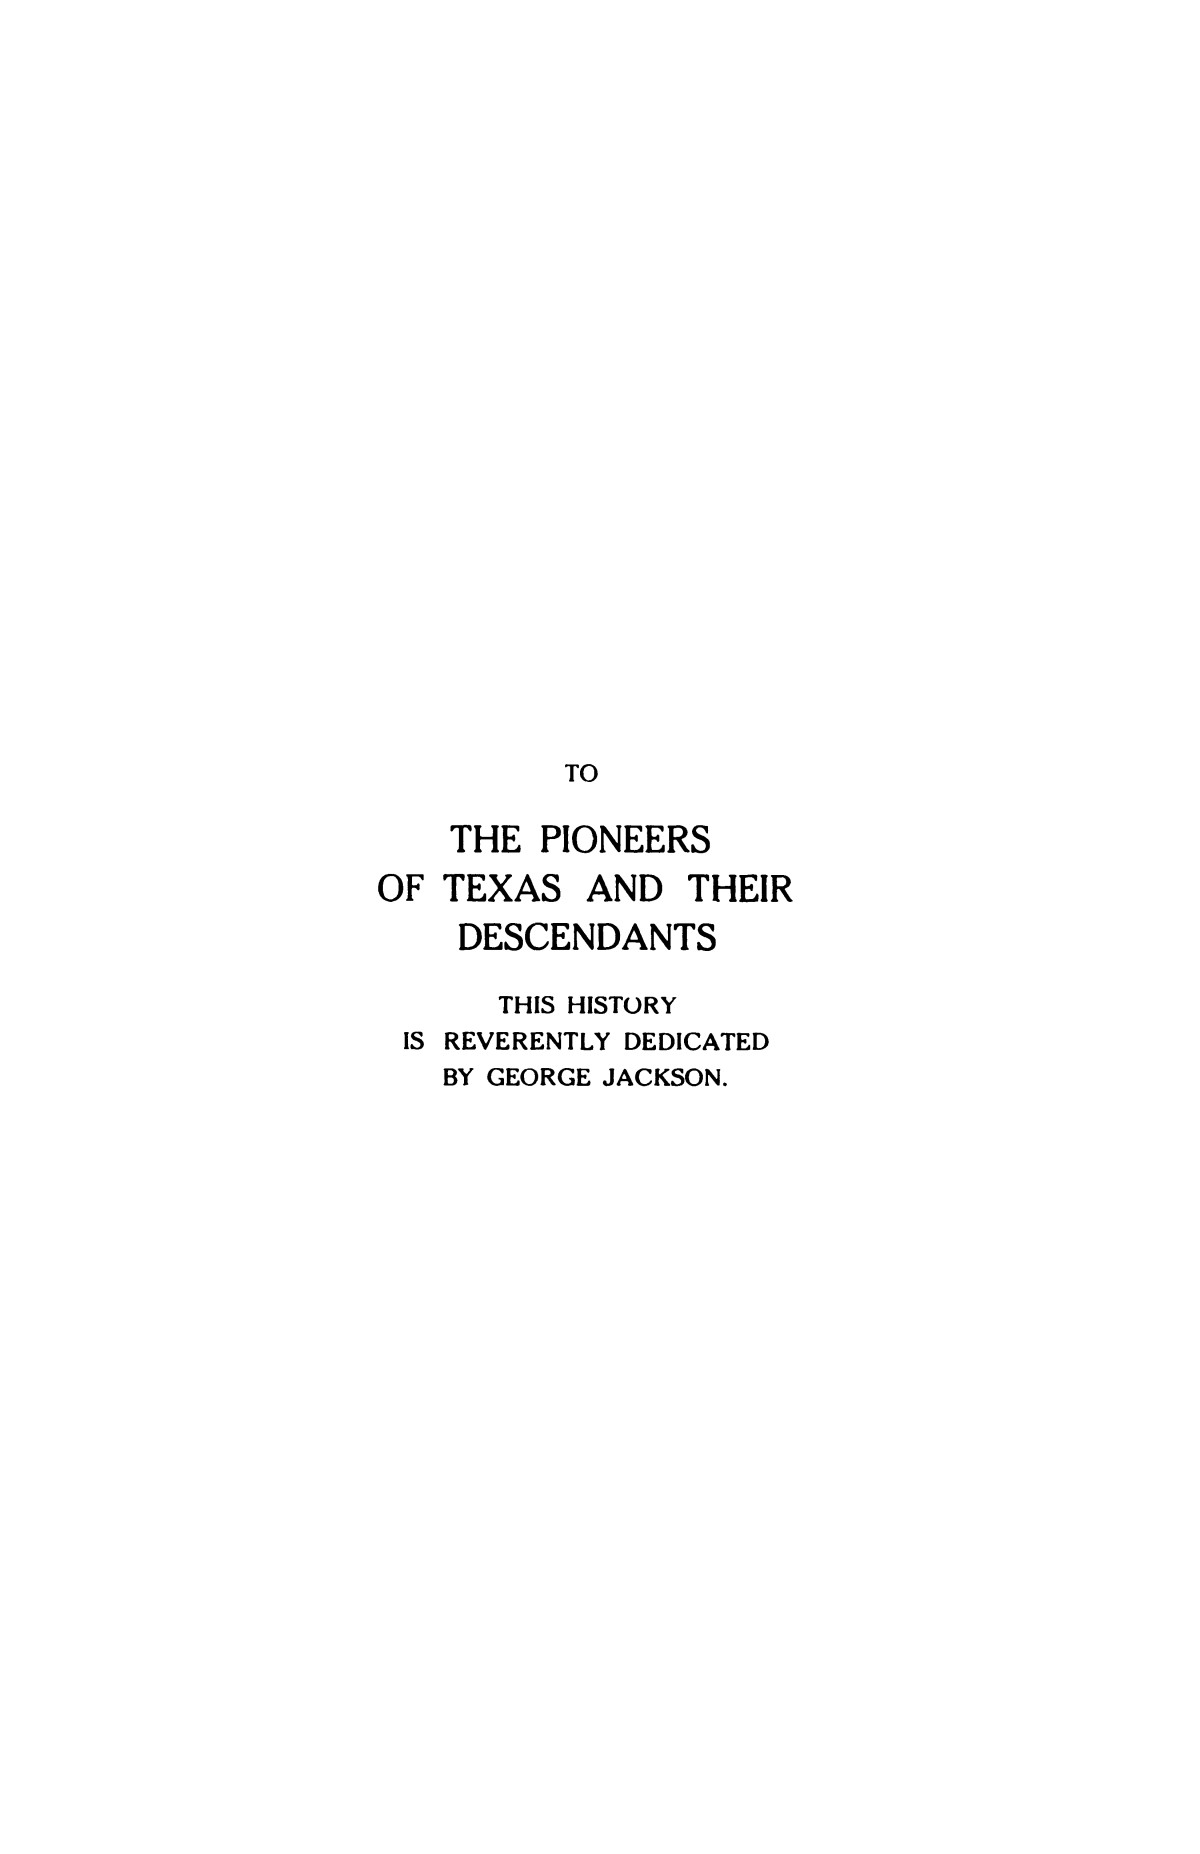 Sixty years in Texas                                                                                                      [Sequence #]: 5 of 398